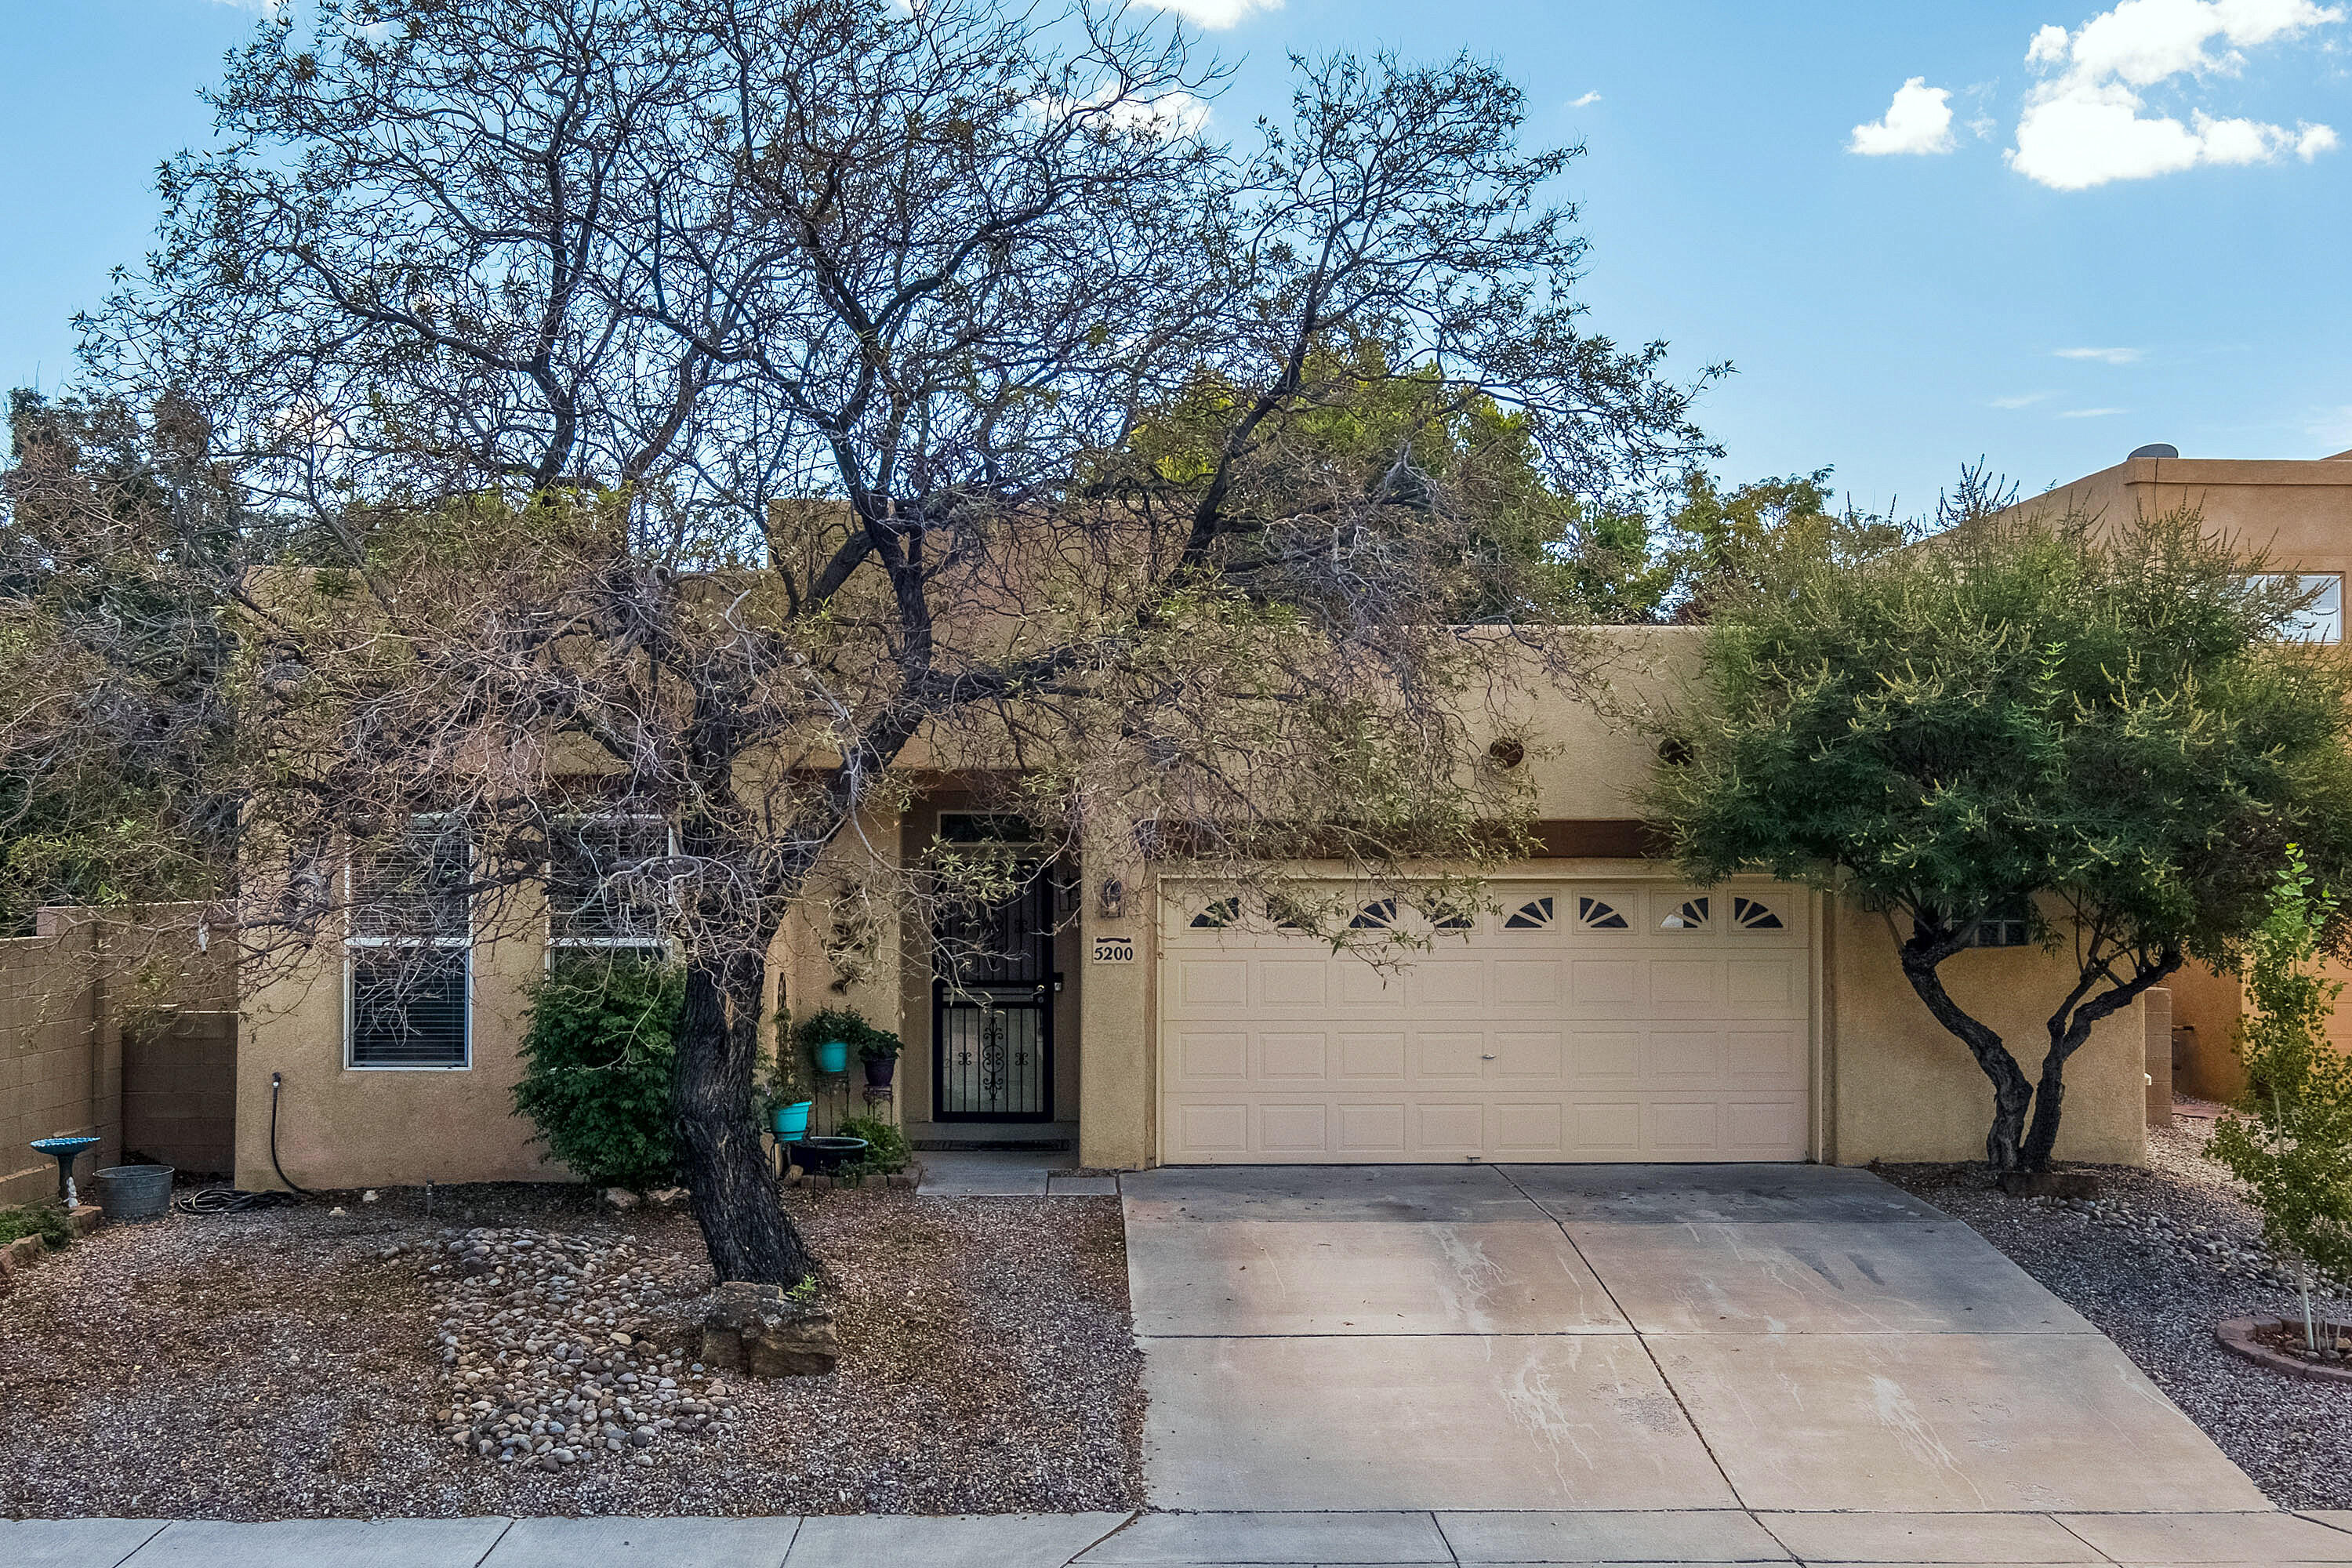 Gorgeous and Inviting! Single Story 3 Br 2 Ba 2 car with extra space for a workshop. Refrigerated air, stunning hardwood flooring, Tile in wet areas, carpet in the minor bedrooms. Open floor plan, high ceilings with no wasted space. Custom Kiva Fireplace with log lighter. Wonder kitchen with double ovens, gas cooktop and high counter with room for 5+ bar stools.  The owner's suite offers a large walk in closet, wood flooring and many elegant touches like dual sinks, garden tub and separate shower with fantastic tile work. The backyard will draw you in and the large covered patio with hot tub will make you want to stay. This home checks a lot of boxes and once you see it you'll know it won't last long.